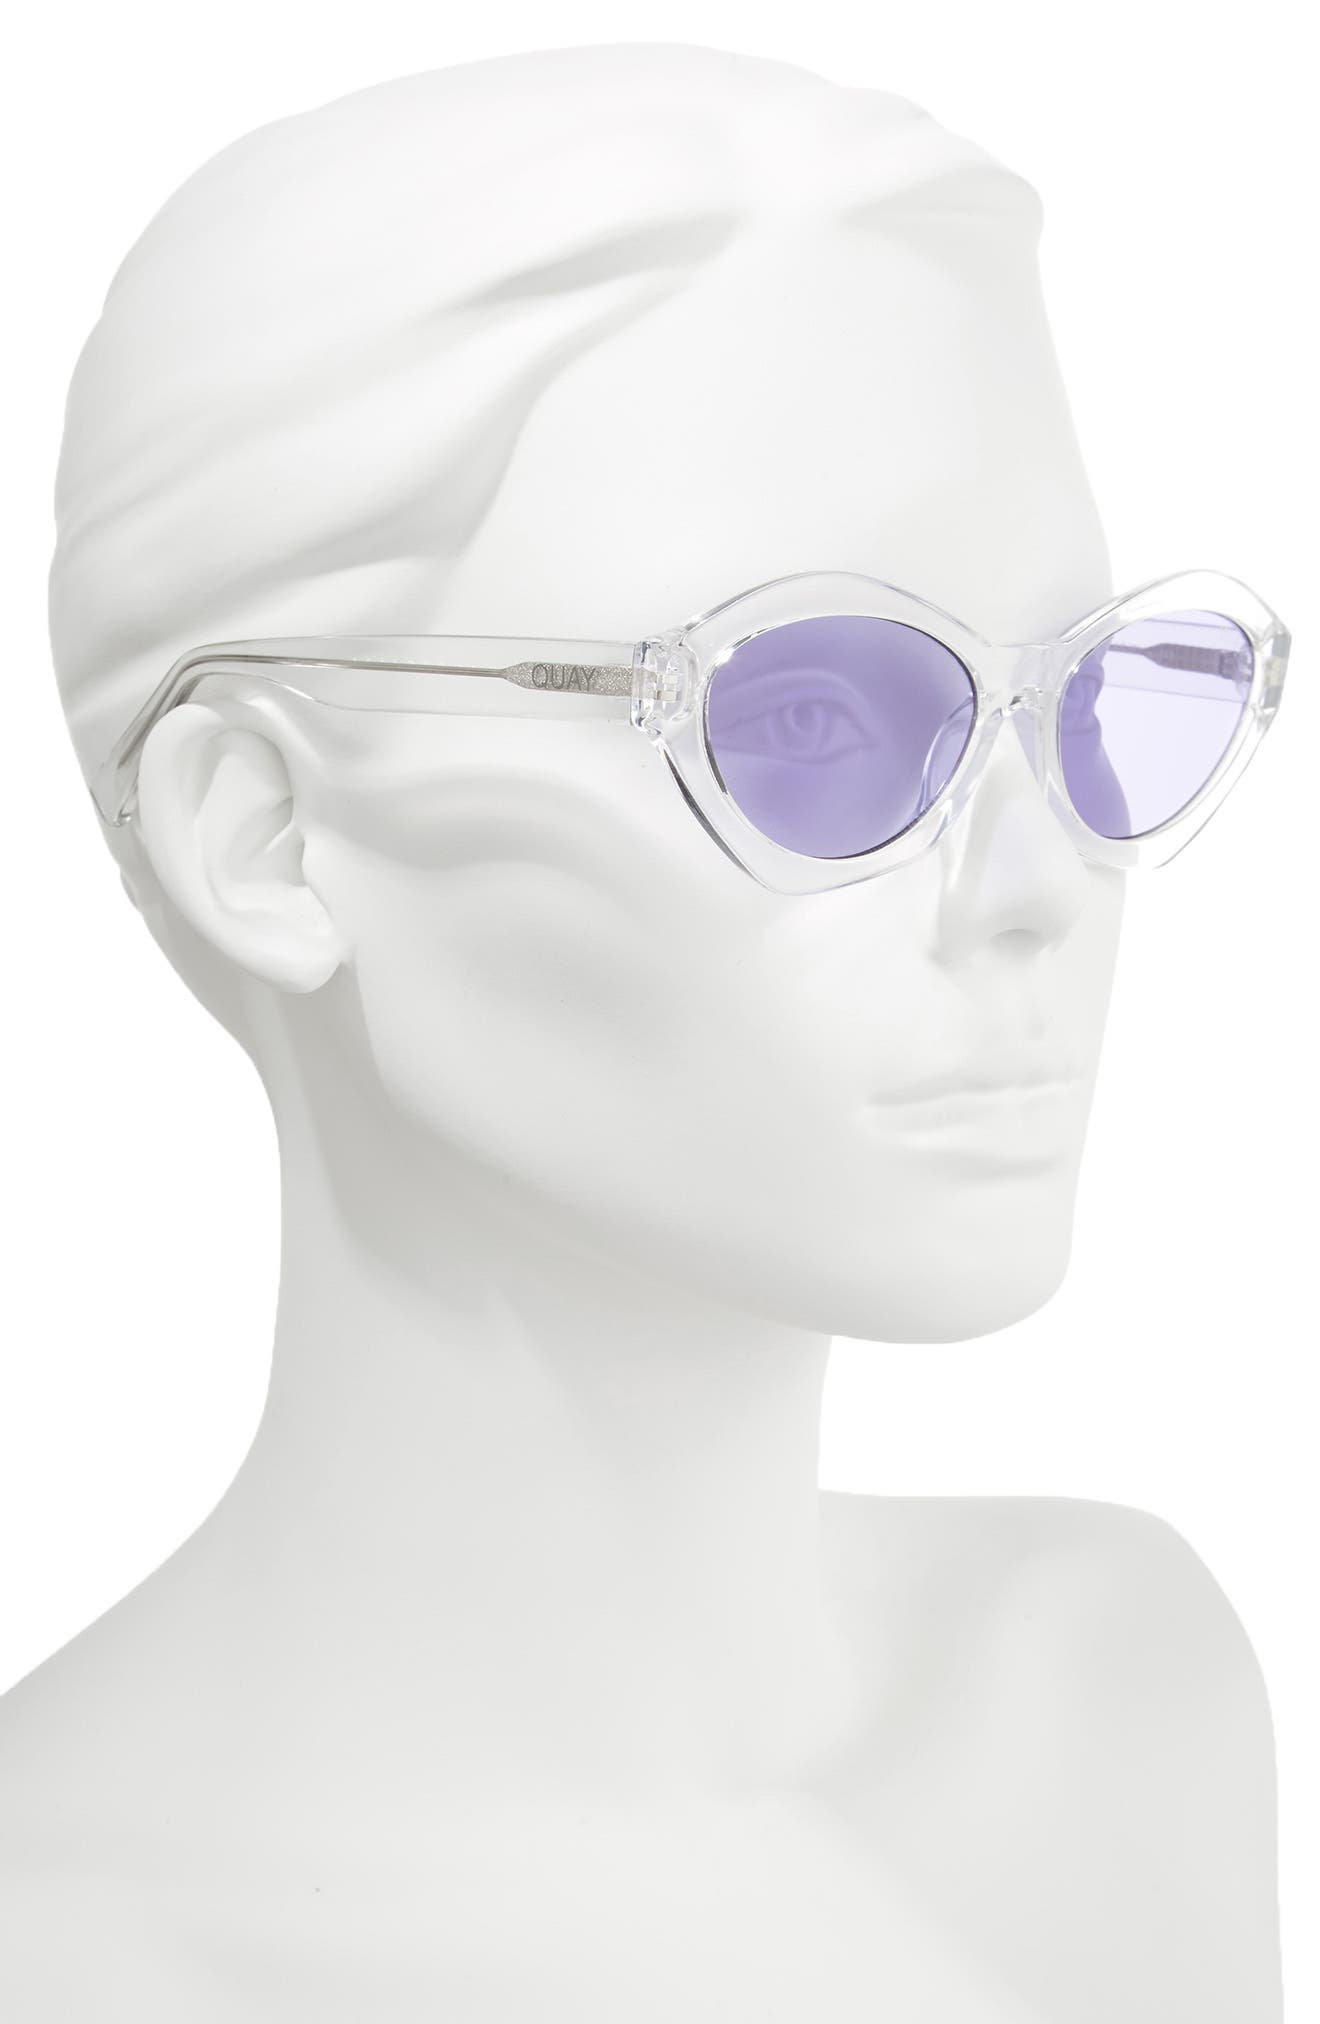 54mm As If Oval Sunglasses,                             Alternate thumbnail 3, color,                             Clear/ Purple